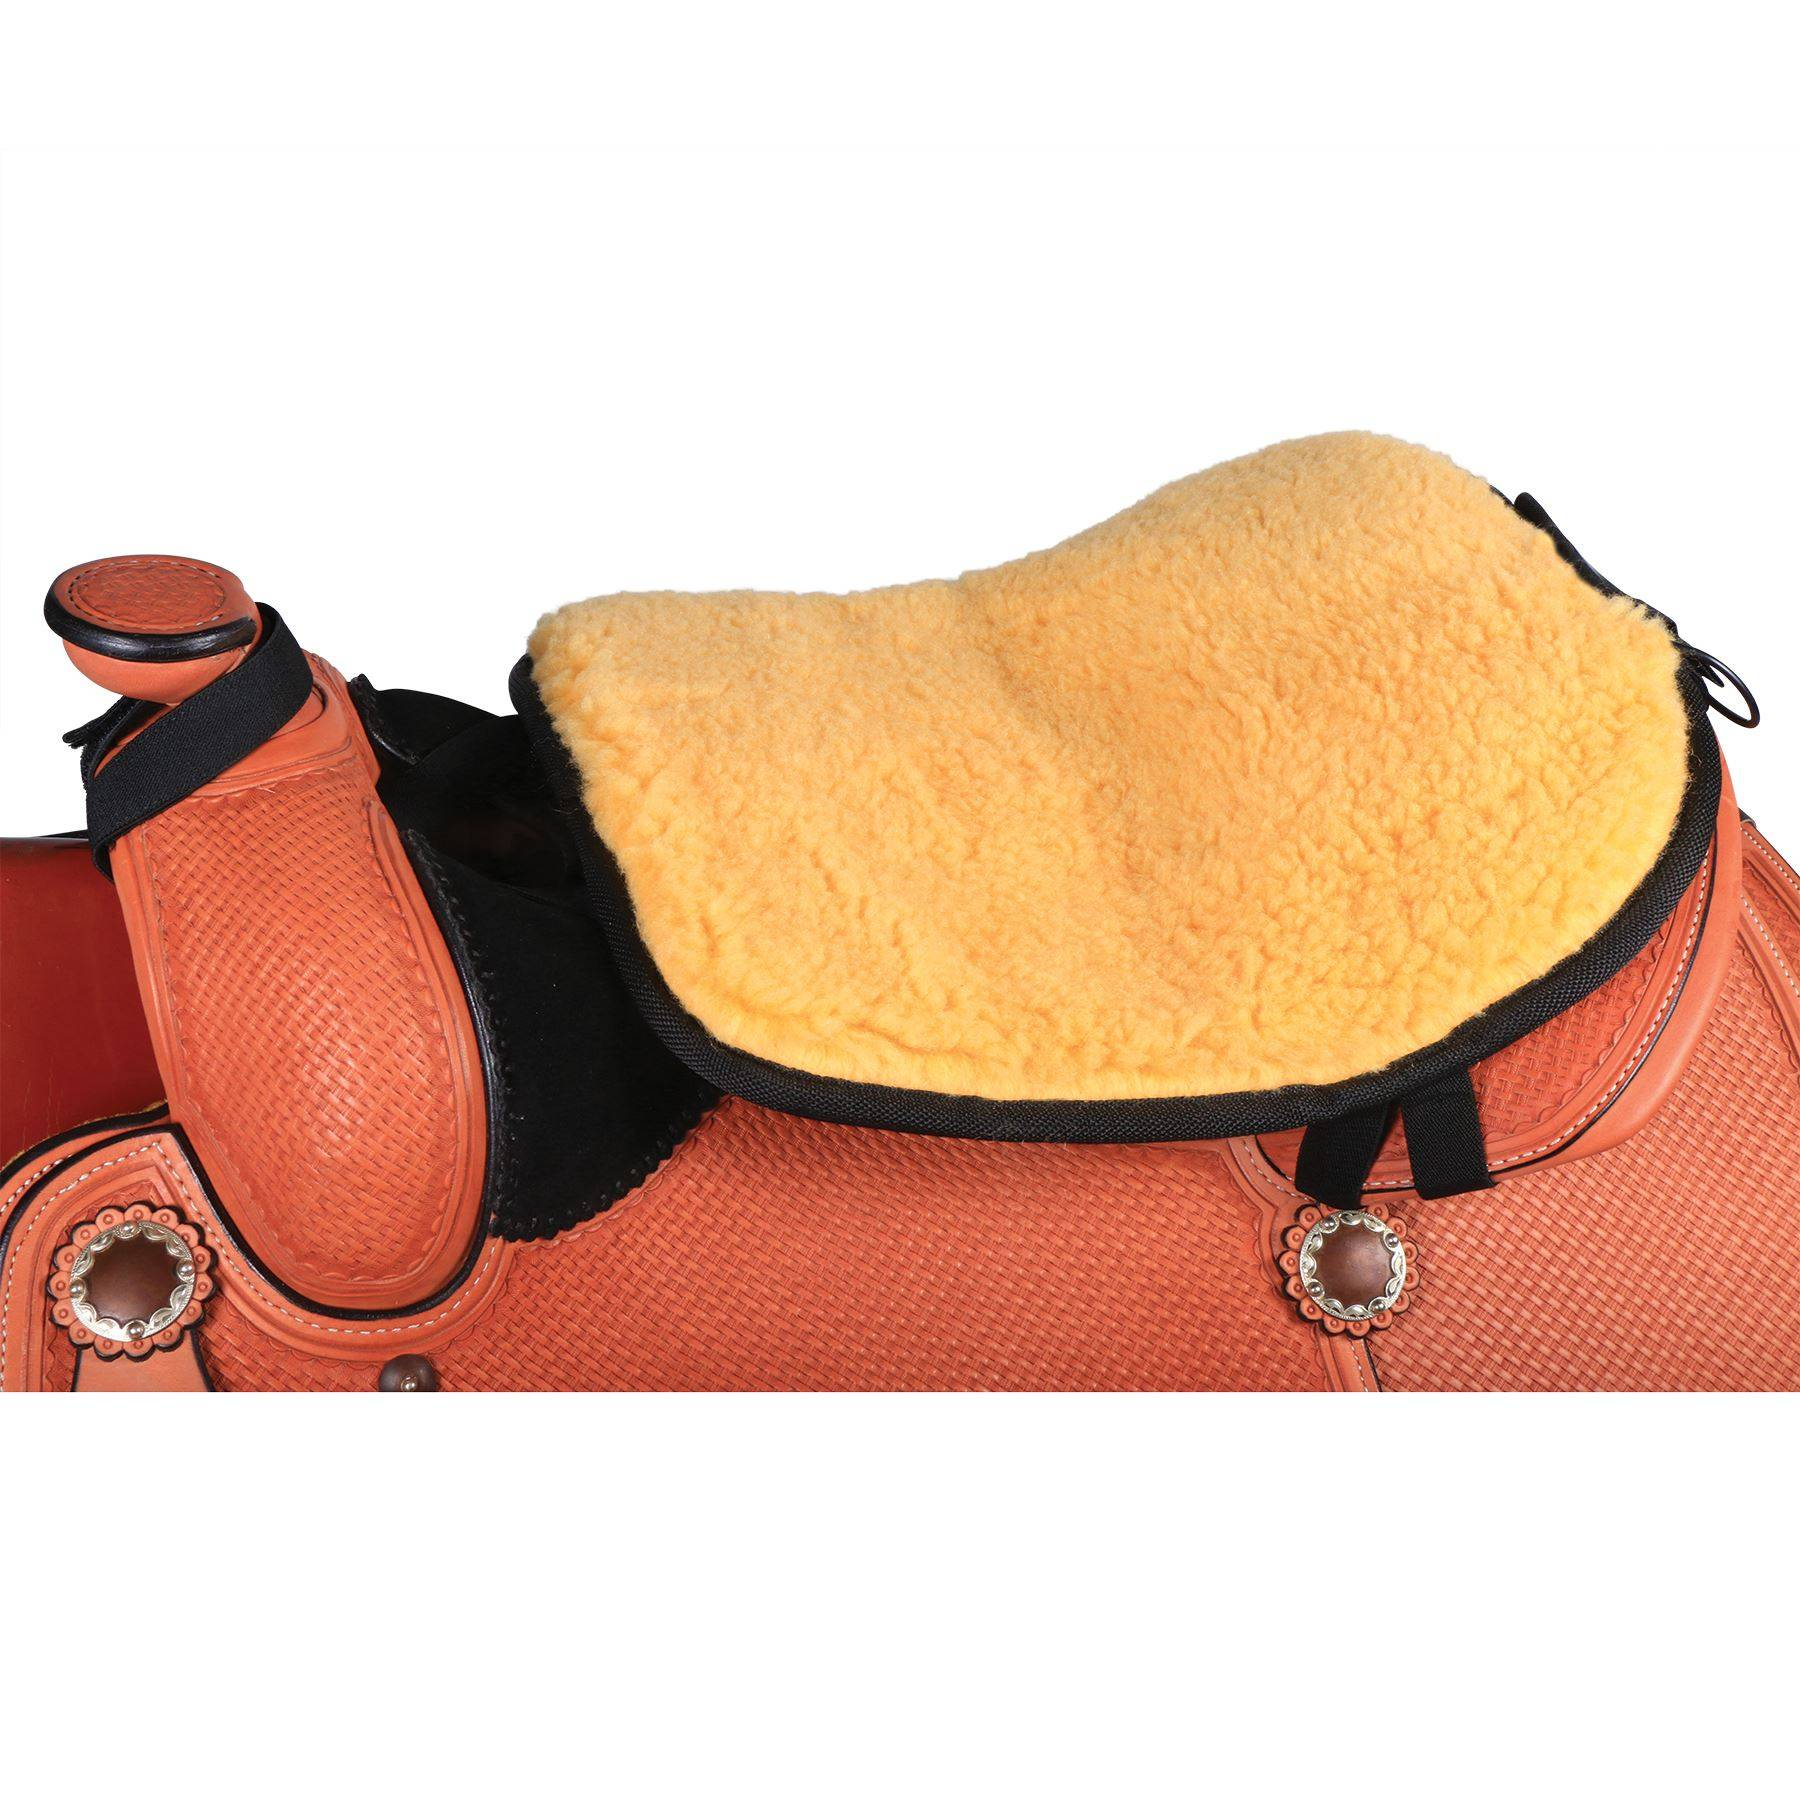 Cozyrides Heated Saddle Cushion